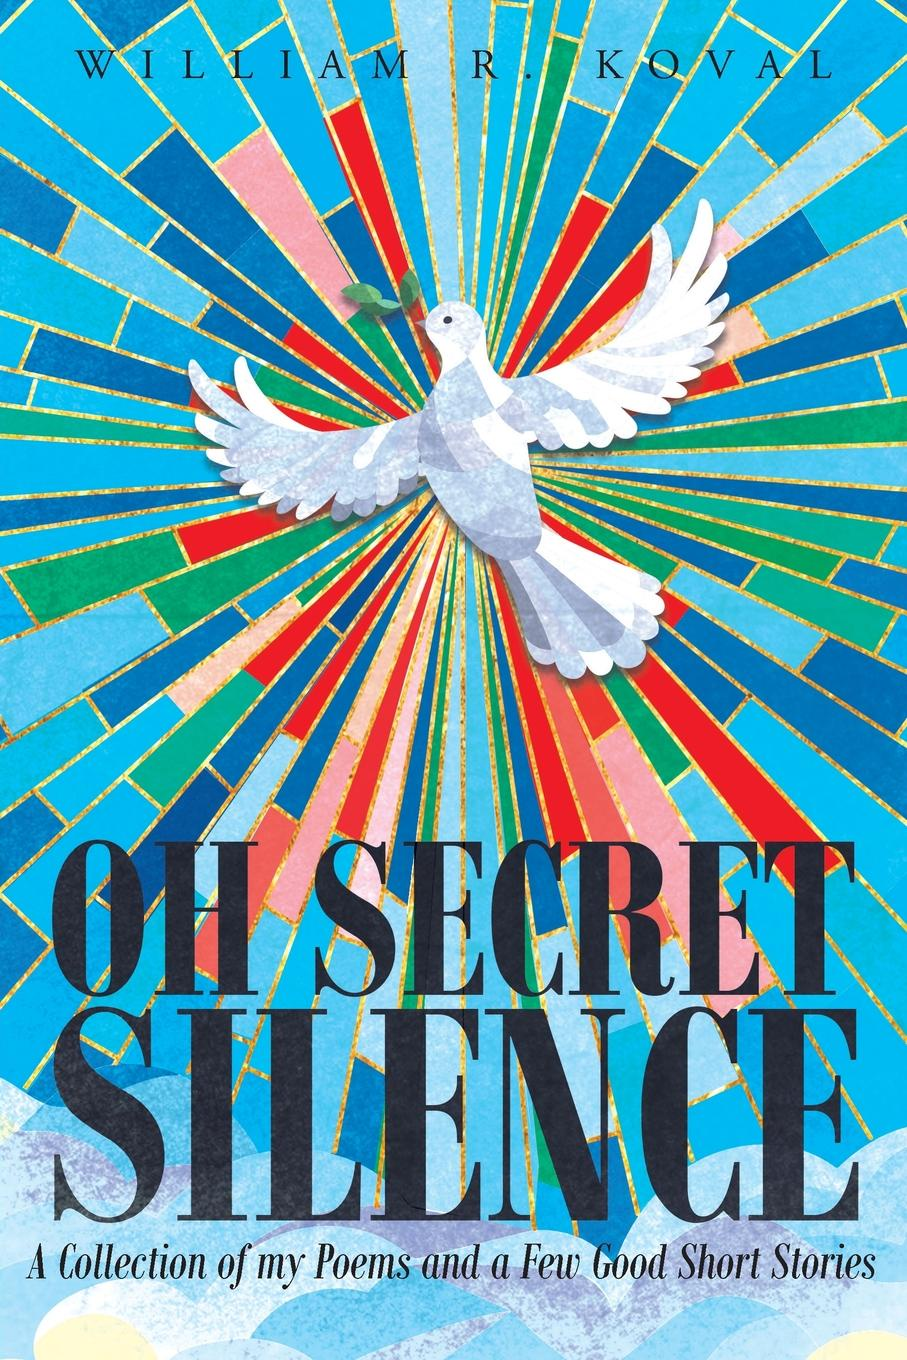 William R. Koval Oh Secret Silence. A Collection of my Poems and a Few Good Short Stories my secret life